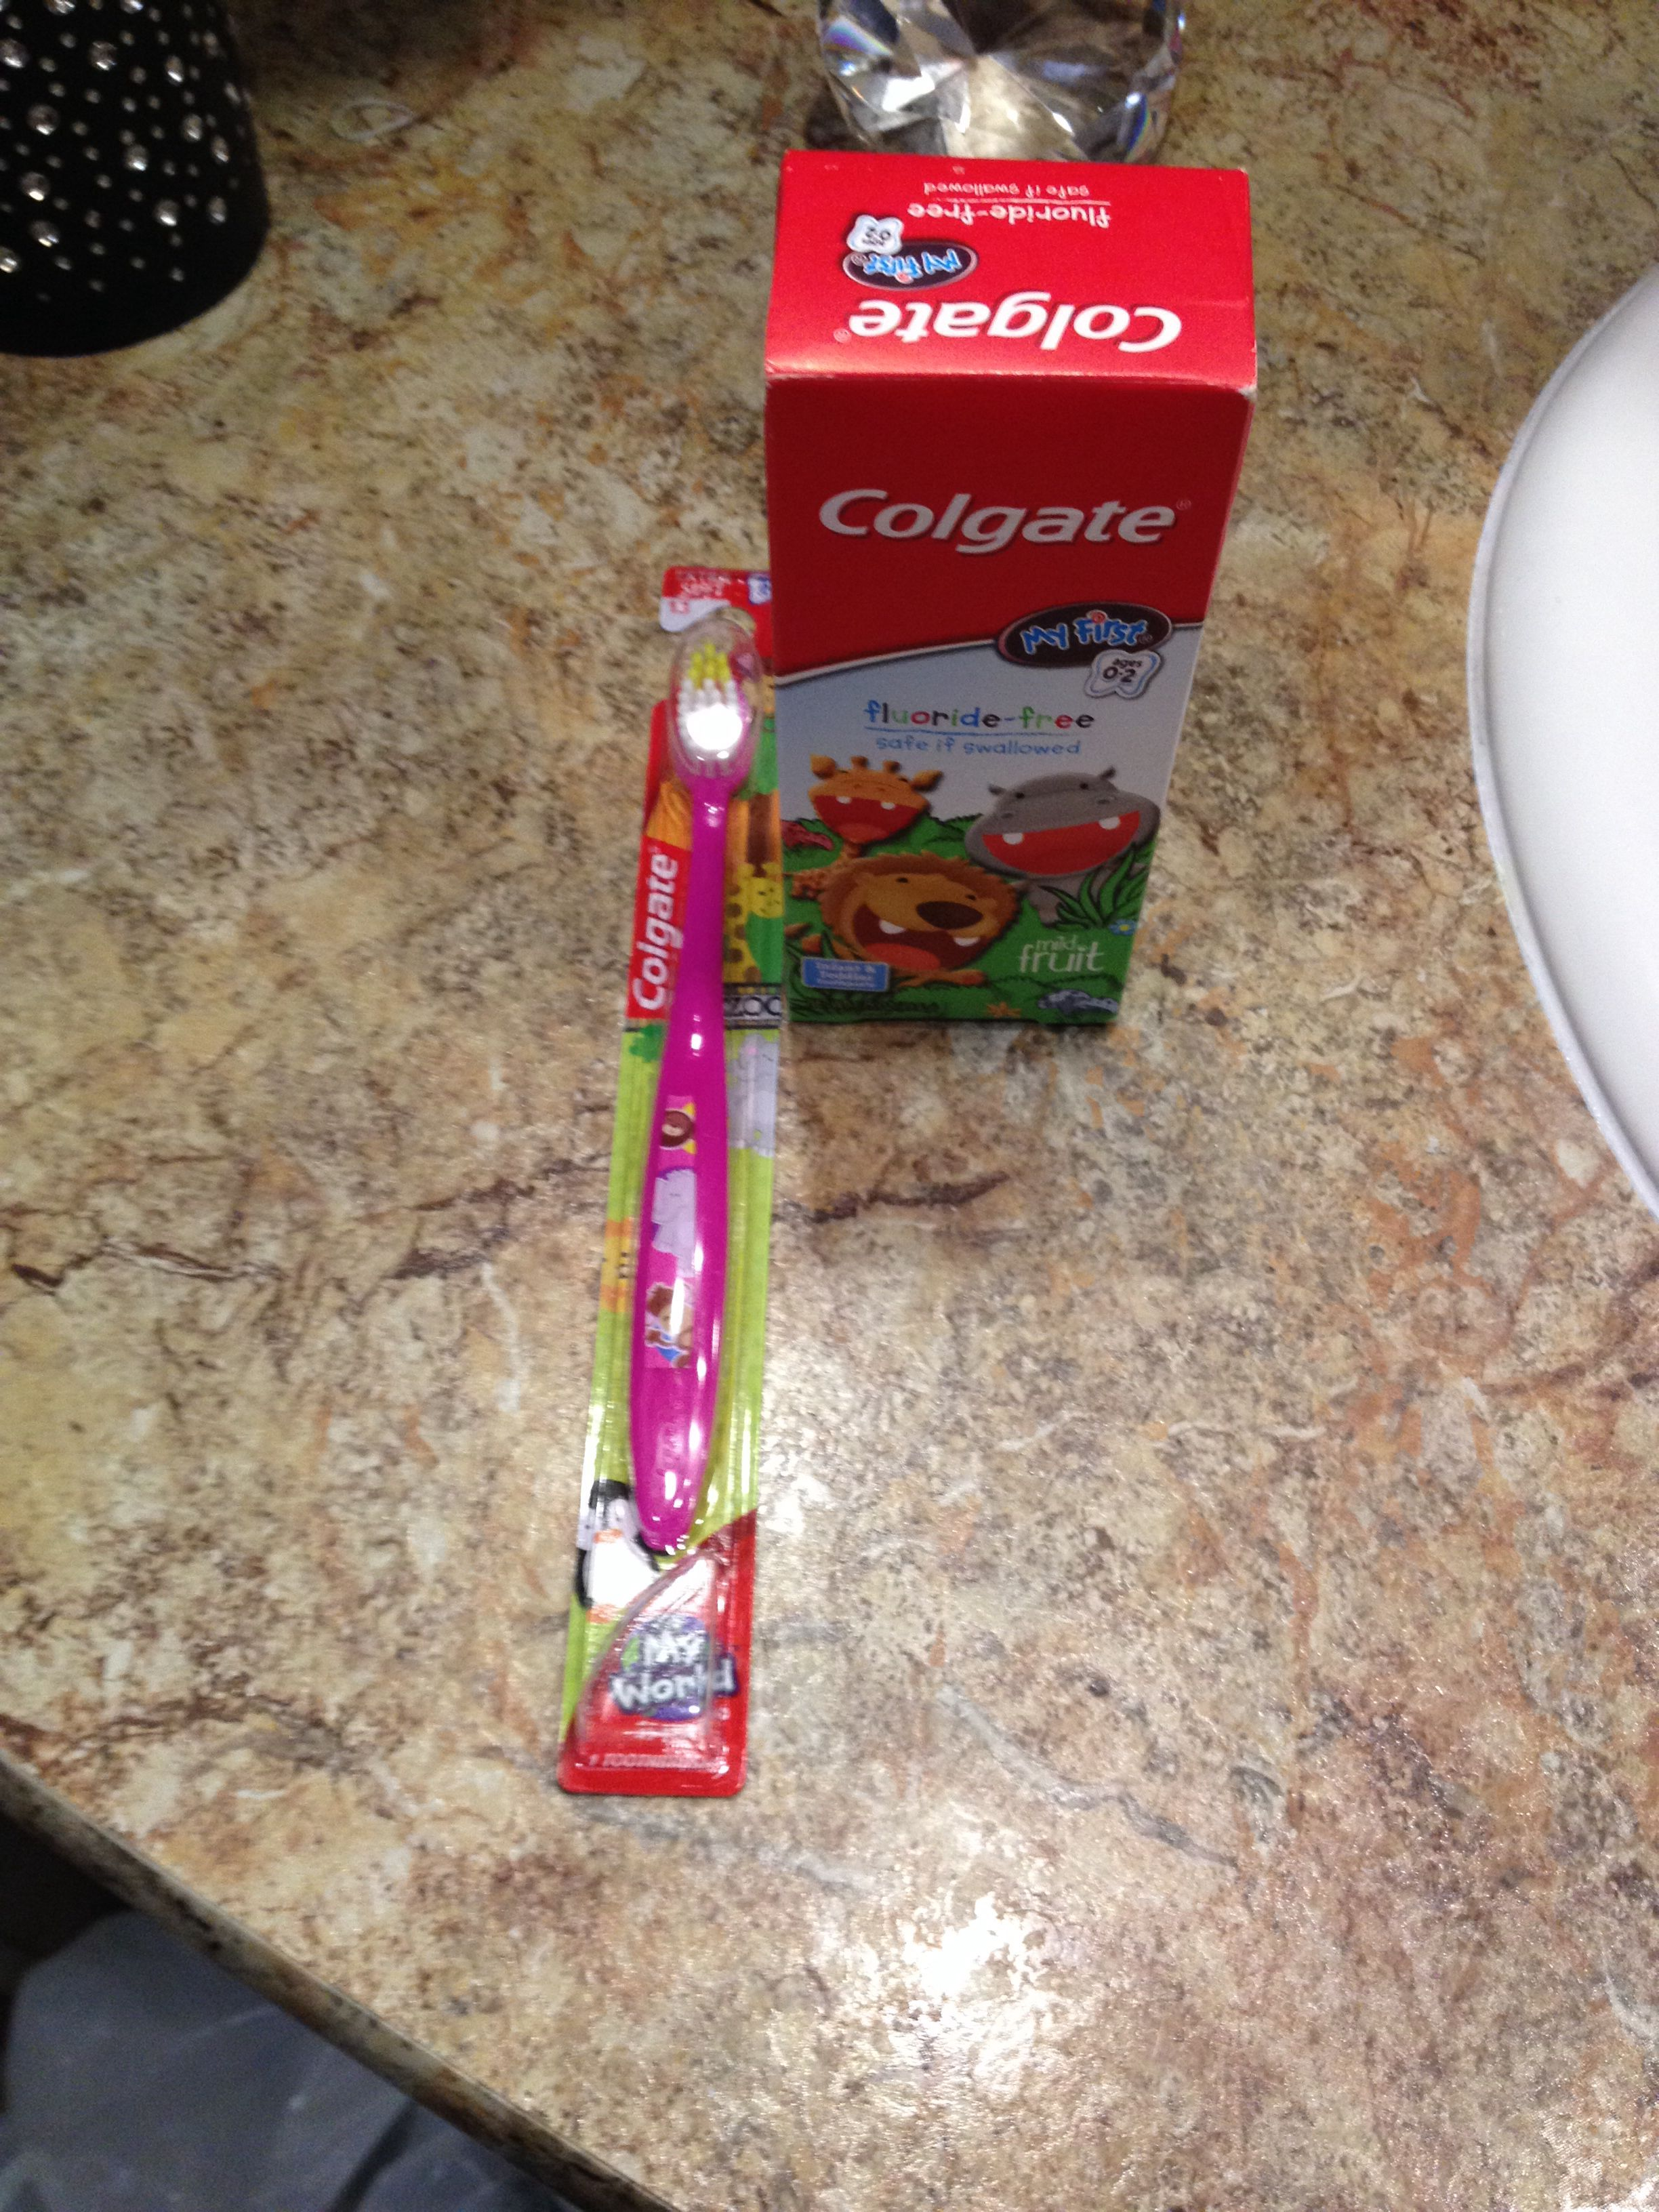 Aww my baby's first tooth brush and tooth paste she's gettin to be such a big girl